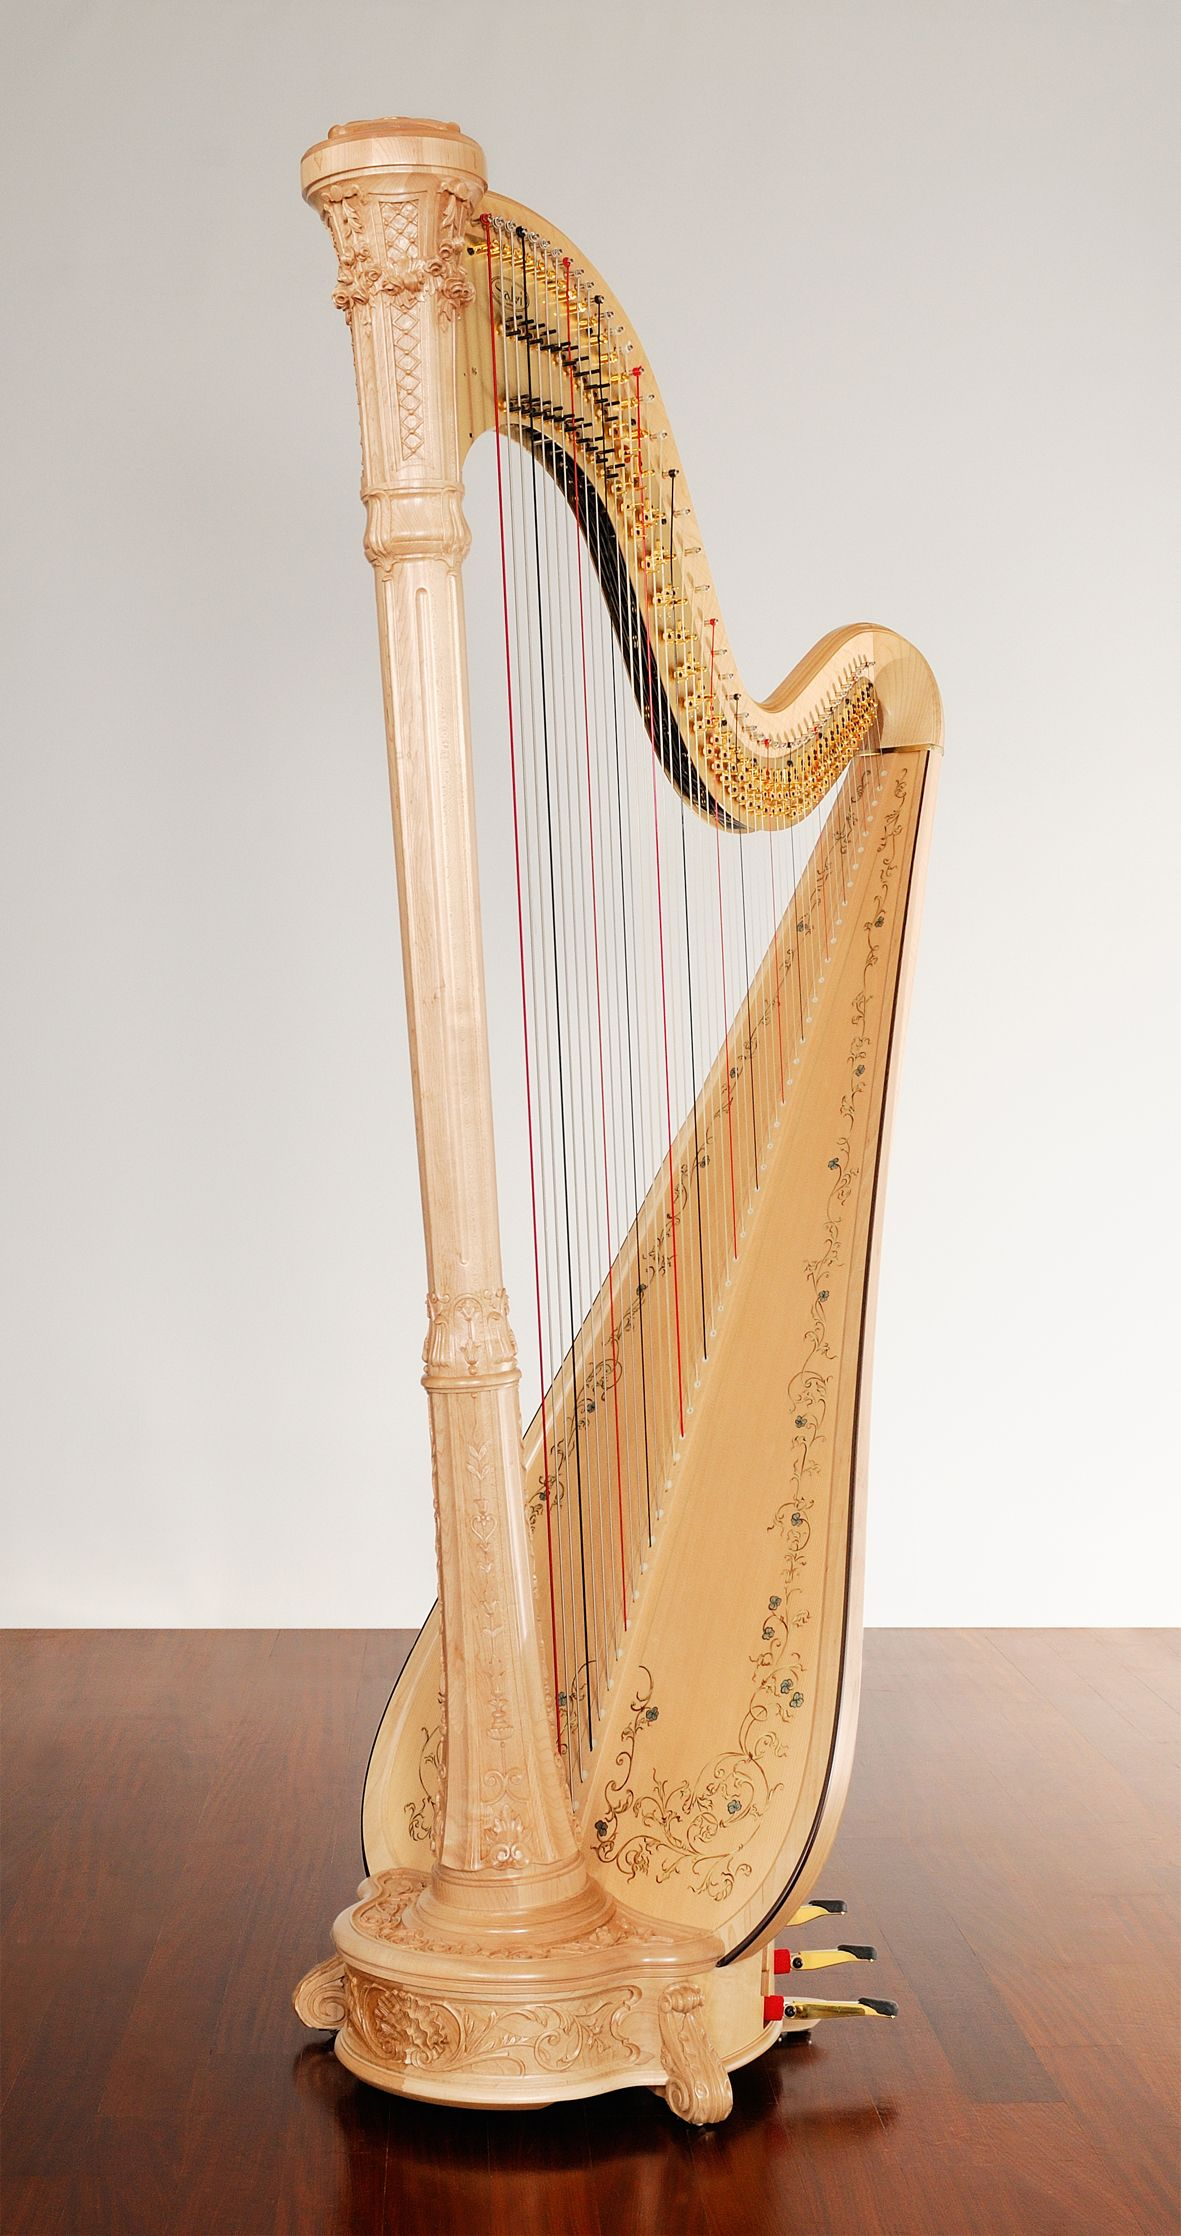 salvi pedal harp i play the harp for weddings teas formal occasions private dinners church. Black Bedroom Furniture Sets. Home Design Ideas